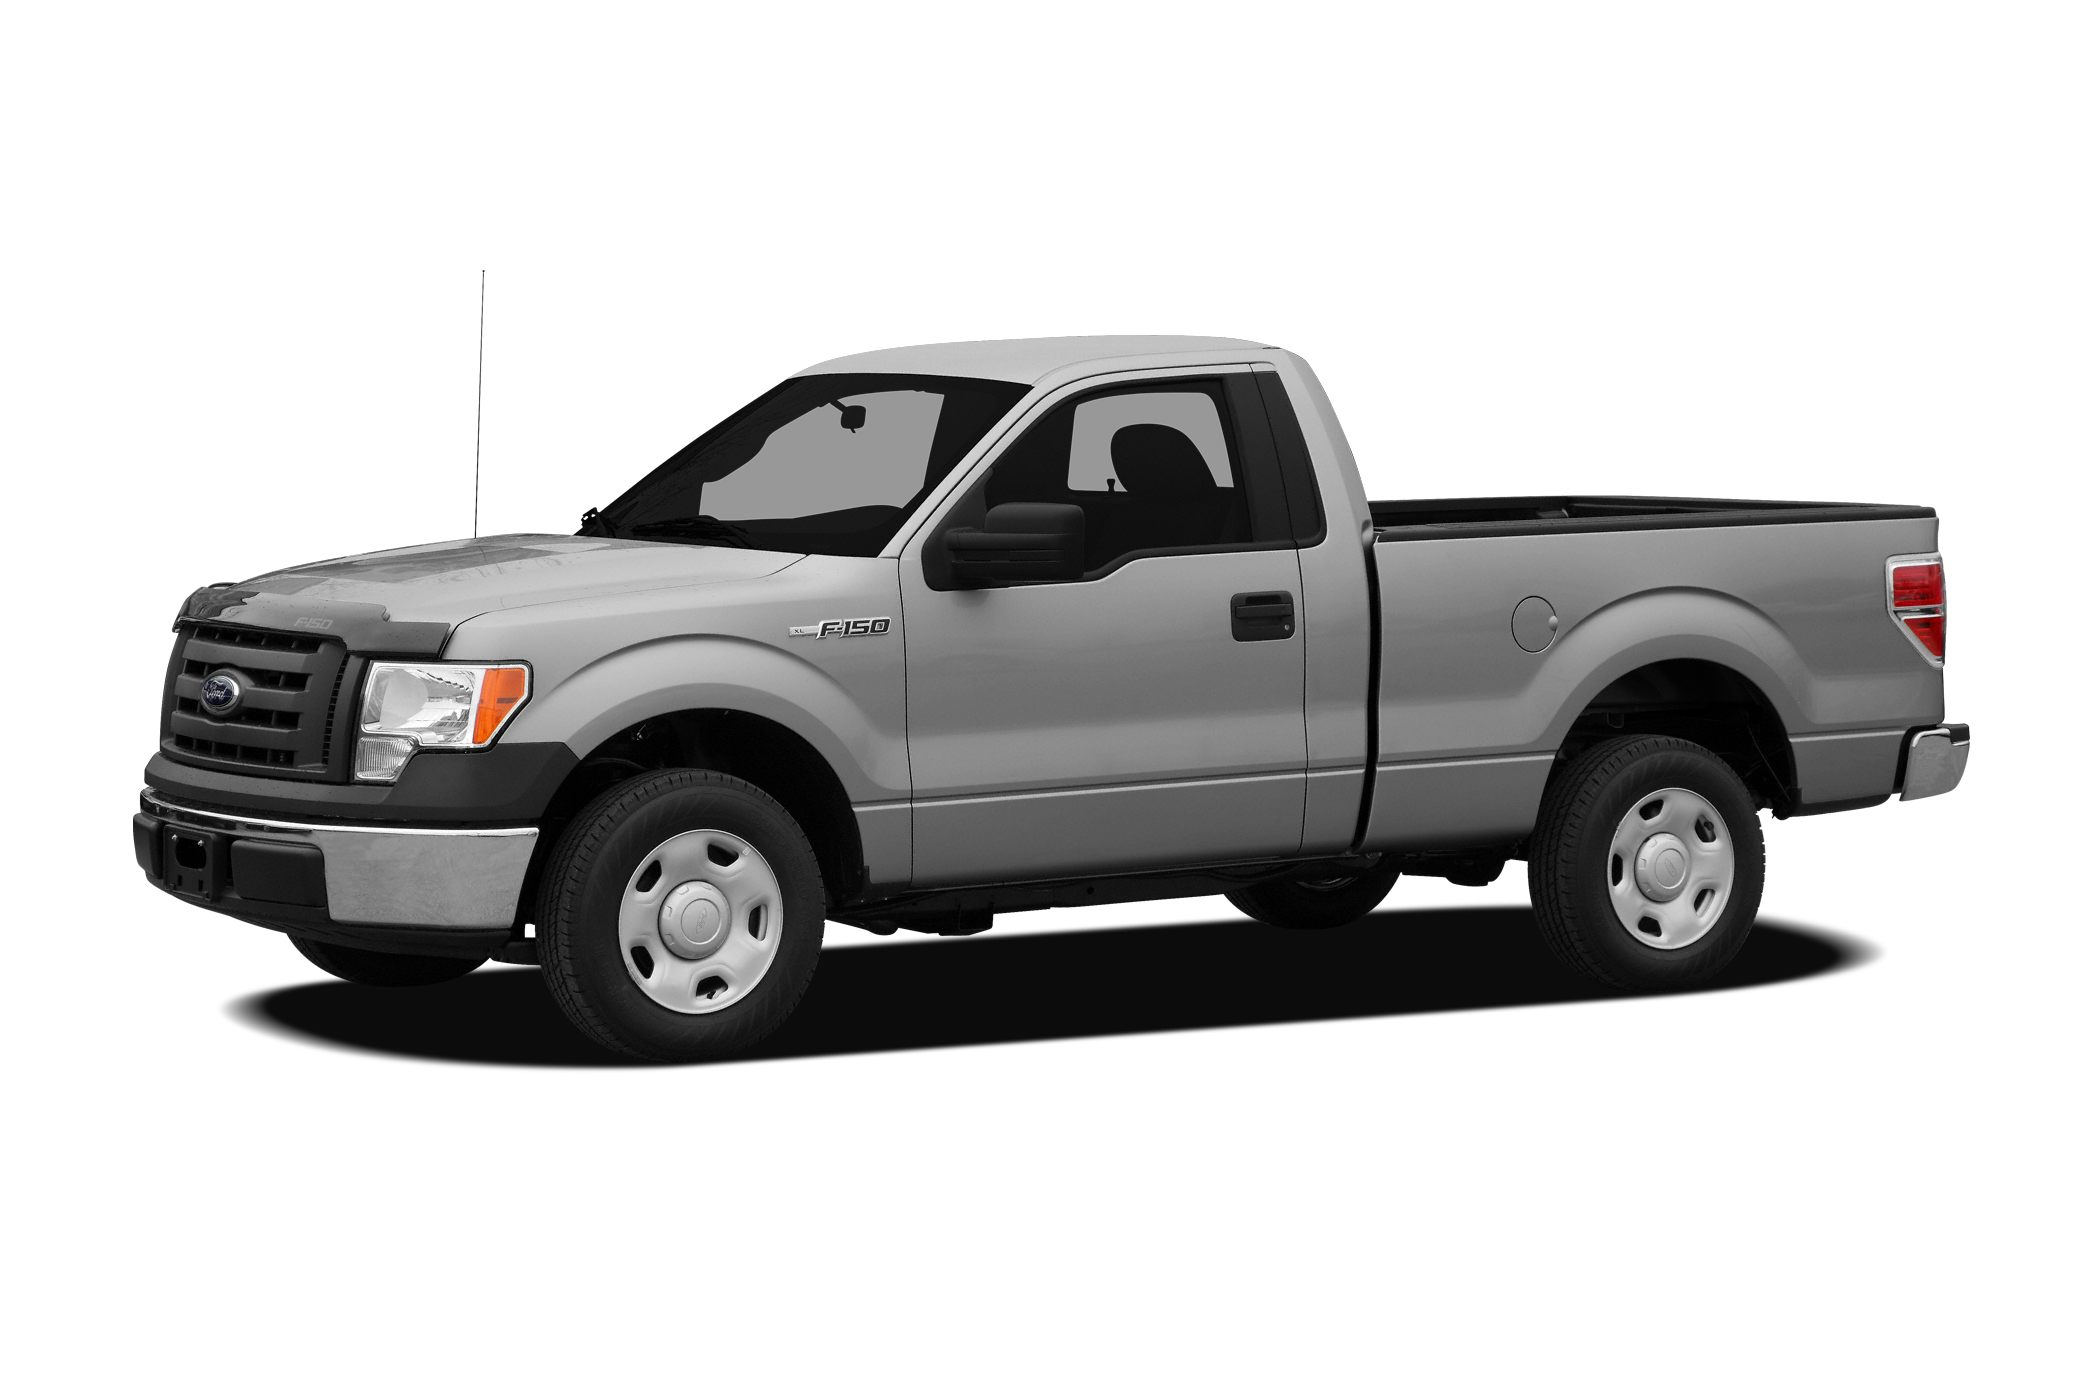 2010 Ford F150 XL Crew Cab Pickup for sale in Mabank for $21,905 with 93,002 miles